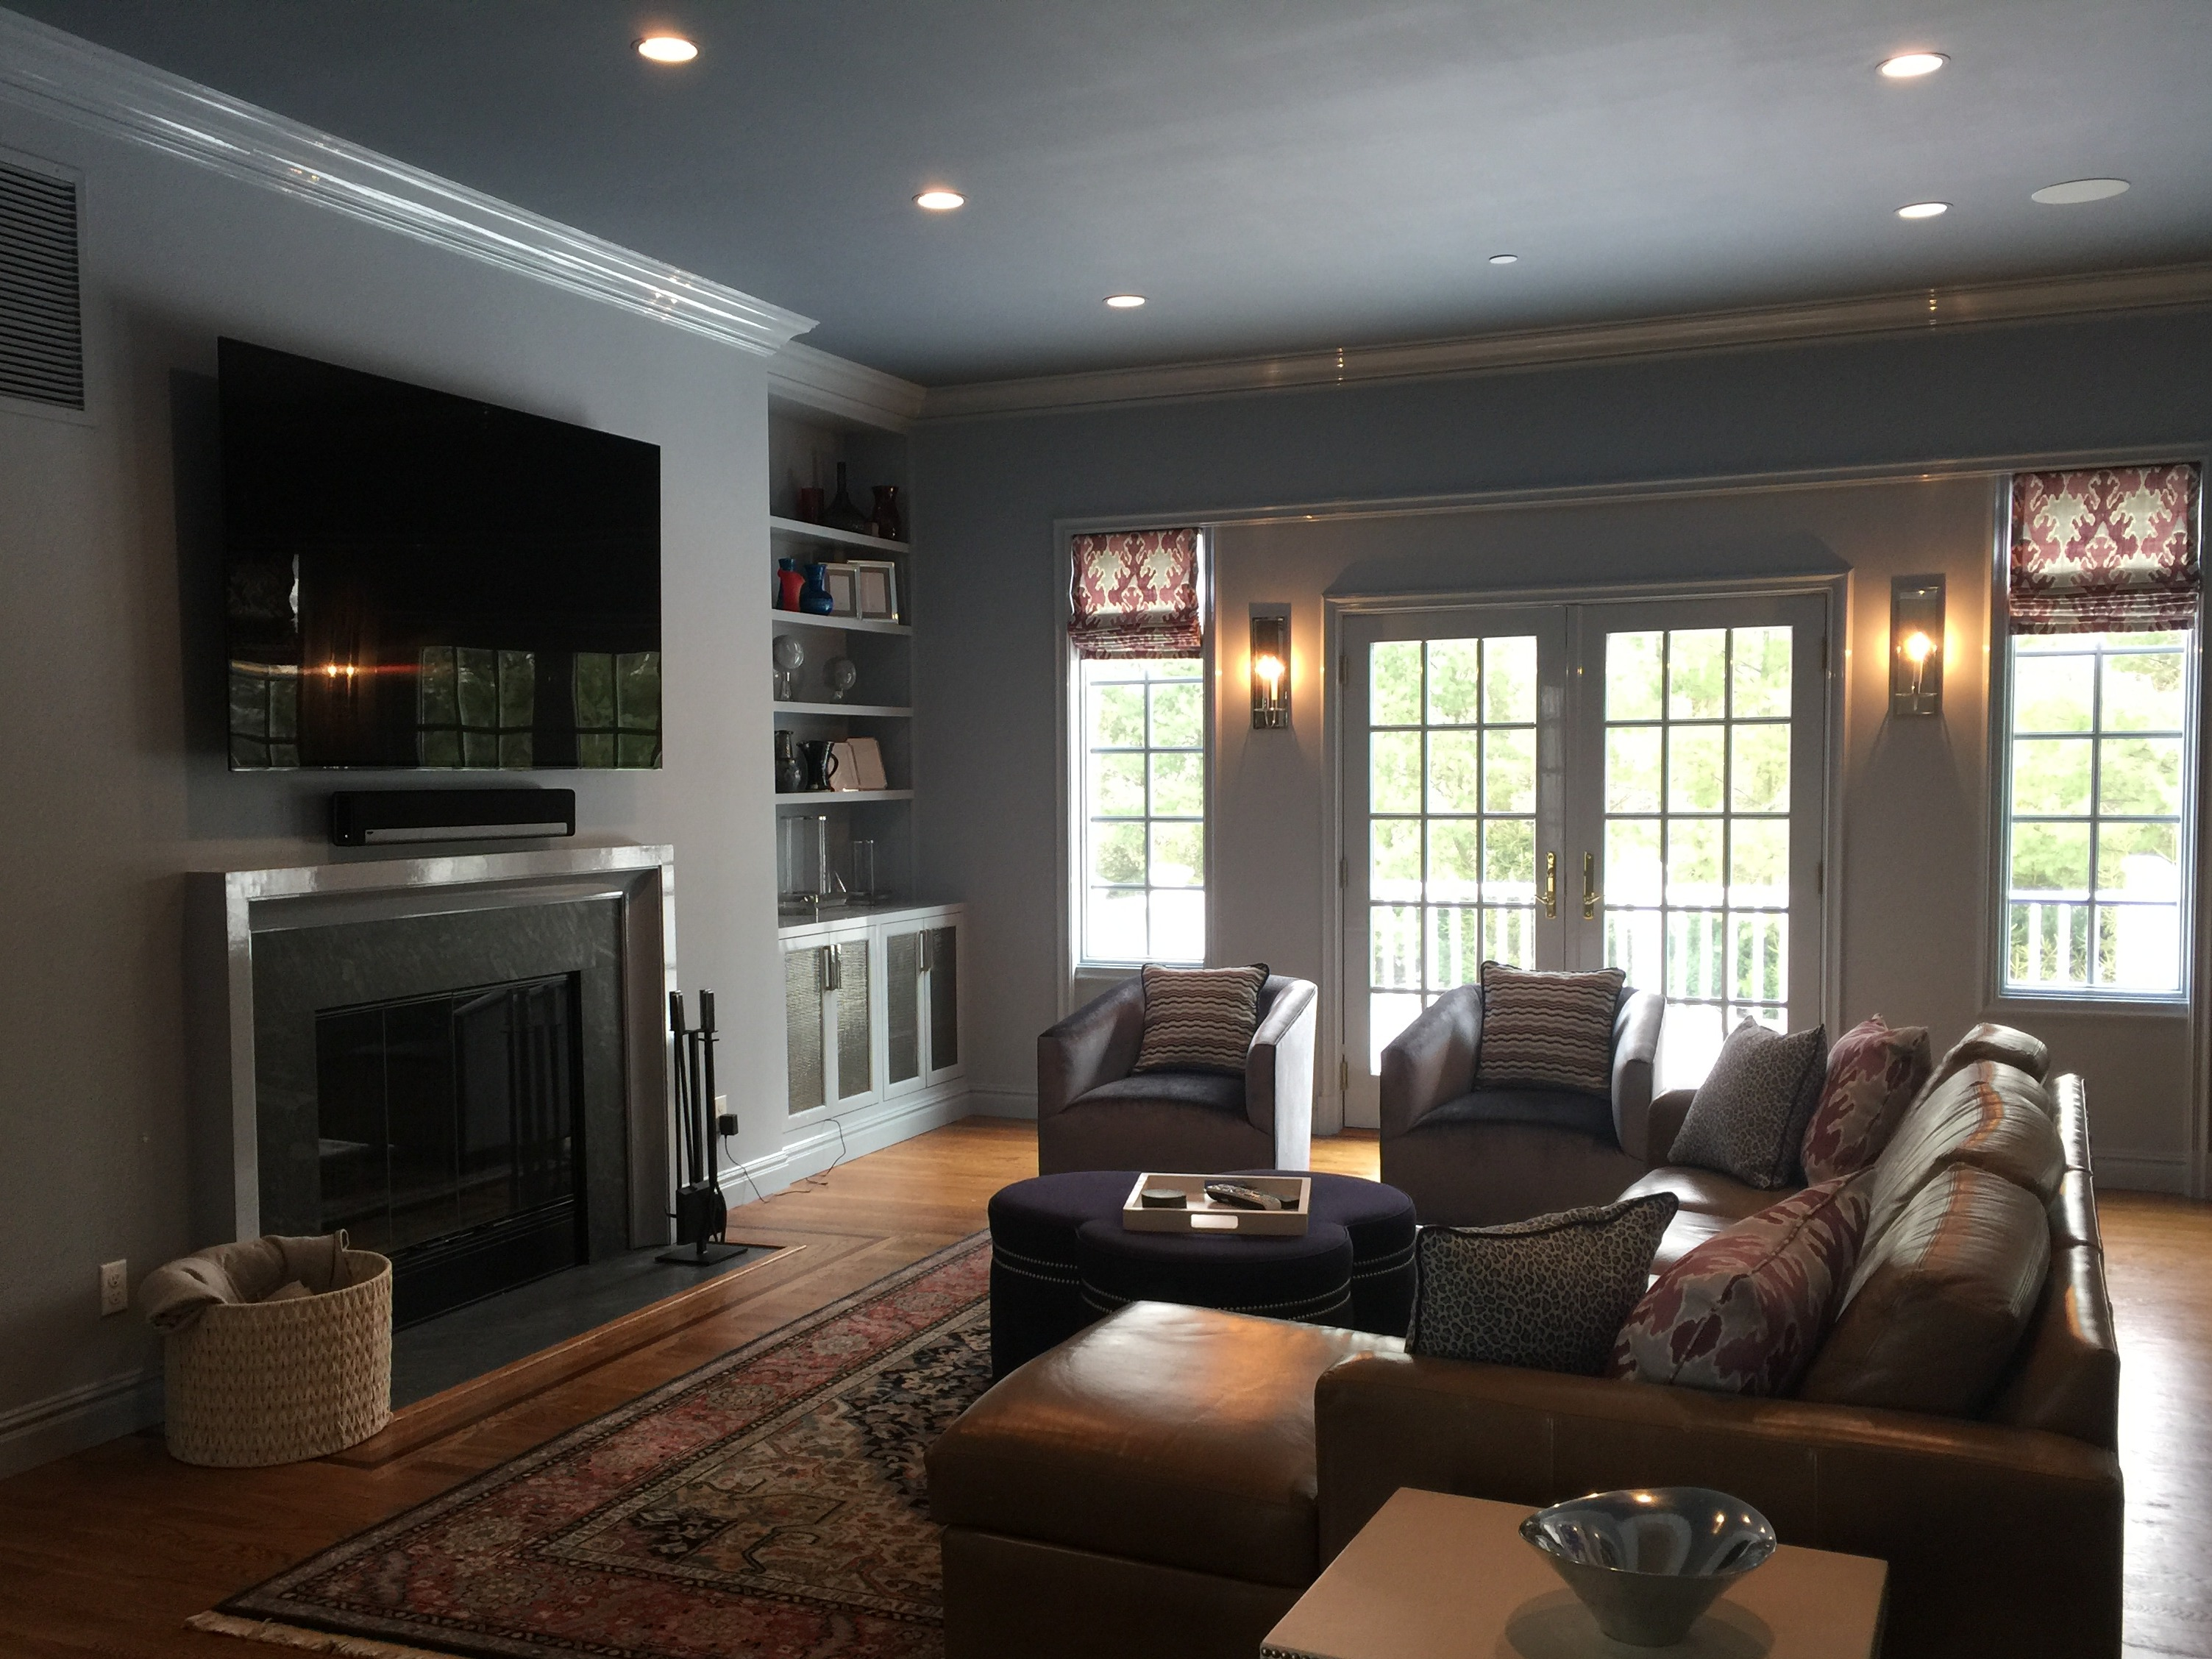 ct beiles county firm new fairfield an winning interiors residential is award designers pimlico design canaan interior